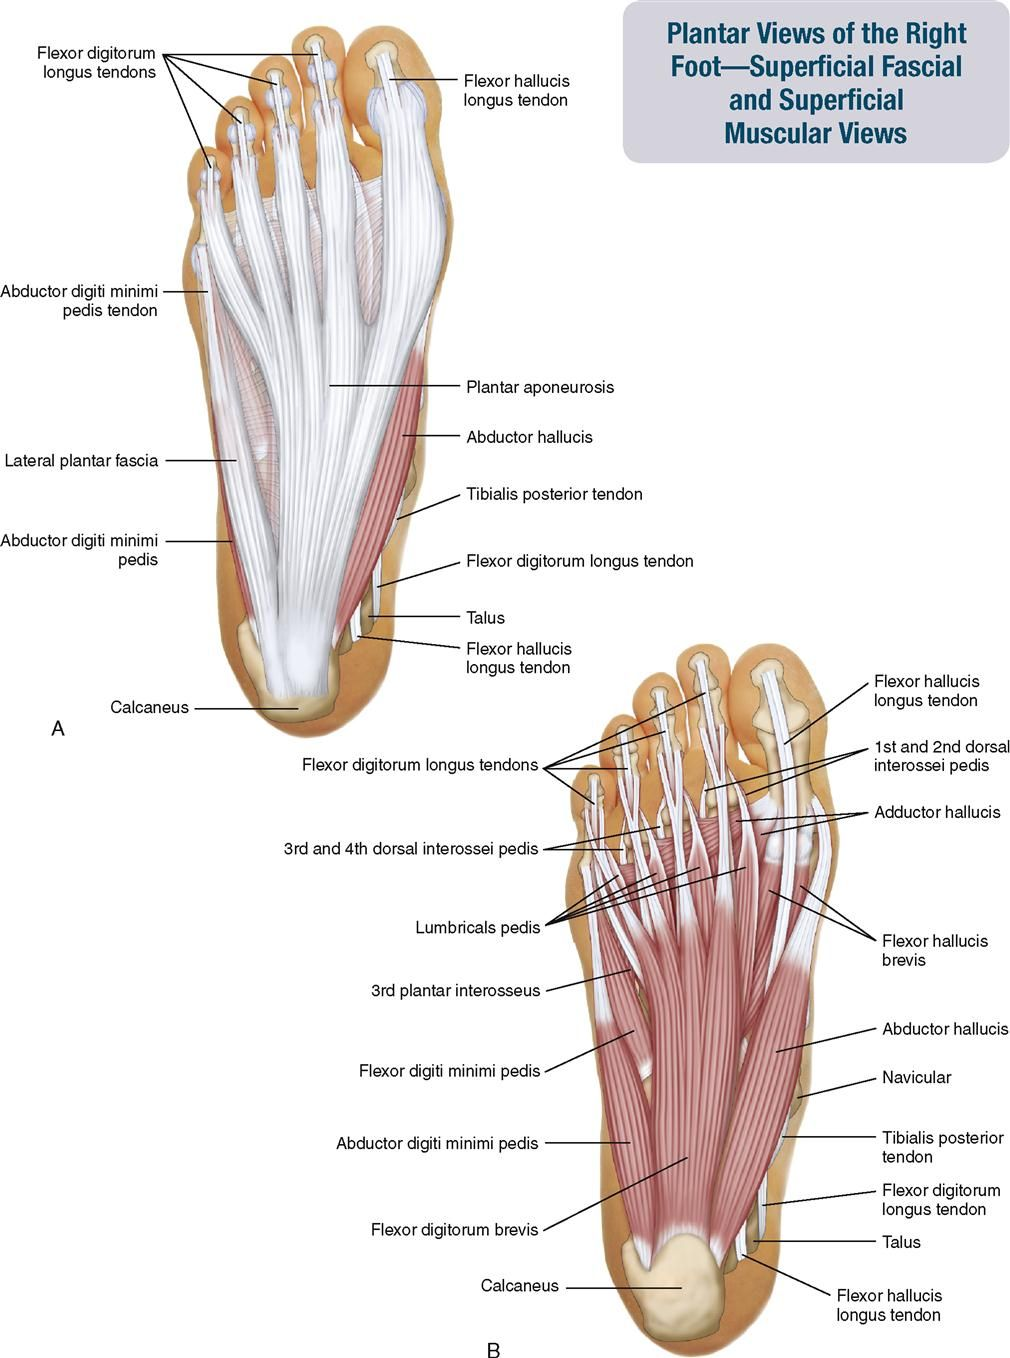 Pin by FabandfitoverX on PERSONAL TRAINER | Pinterest | Anatomy ...